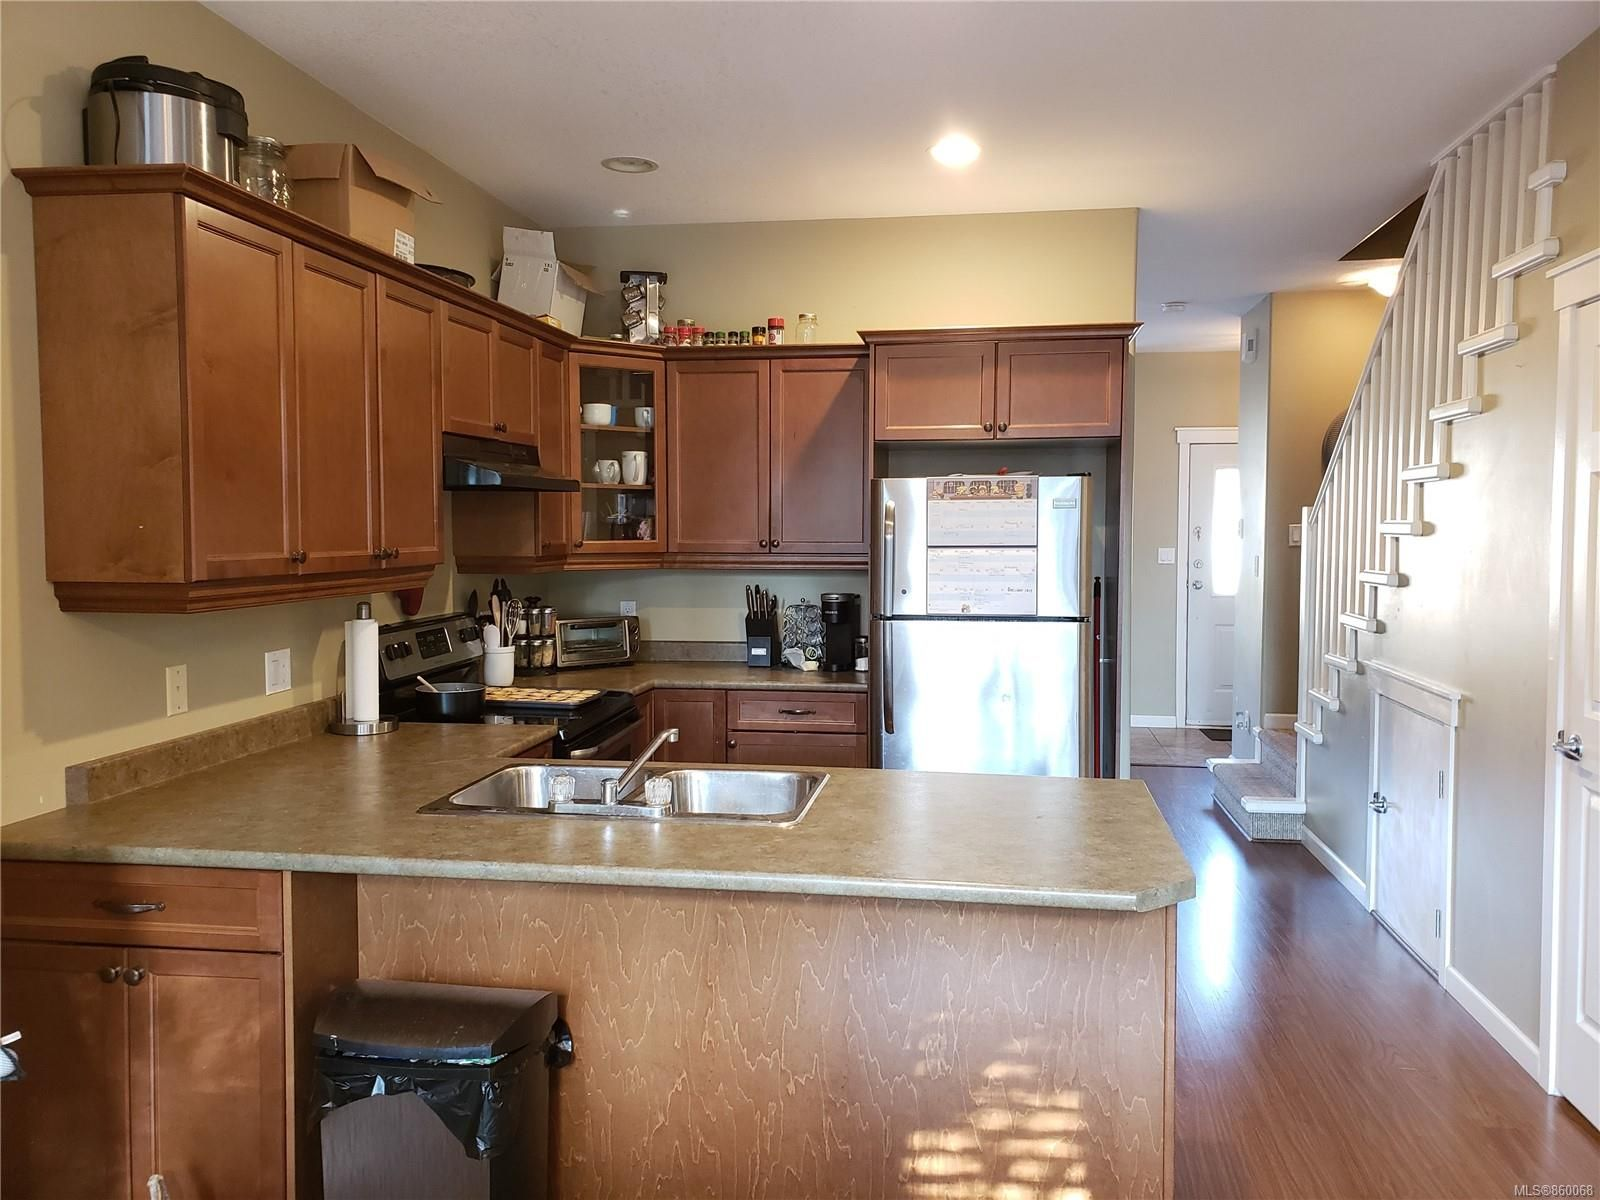 Photo 7: Photos: 105 2787 1st St in Courtenay: CV Courtenay City House for sale (Comox Valley)  : MLS®# 860068